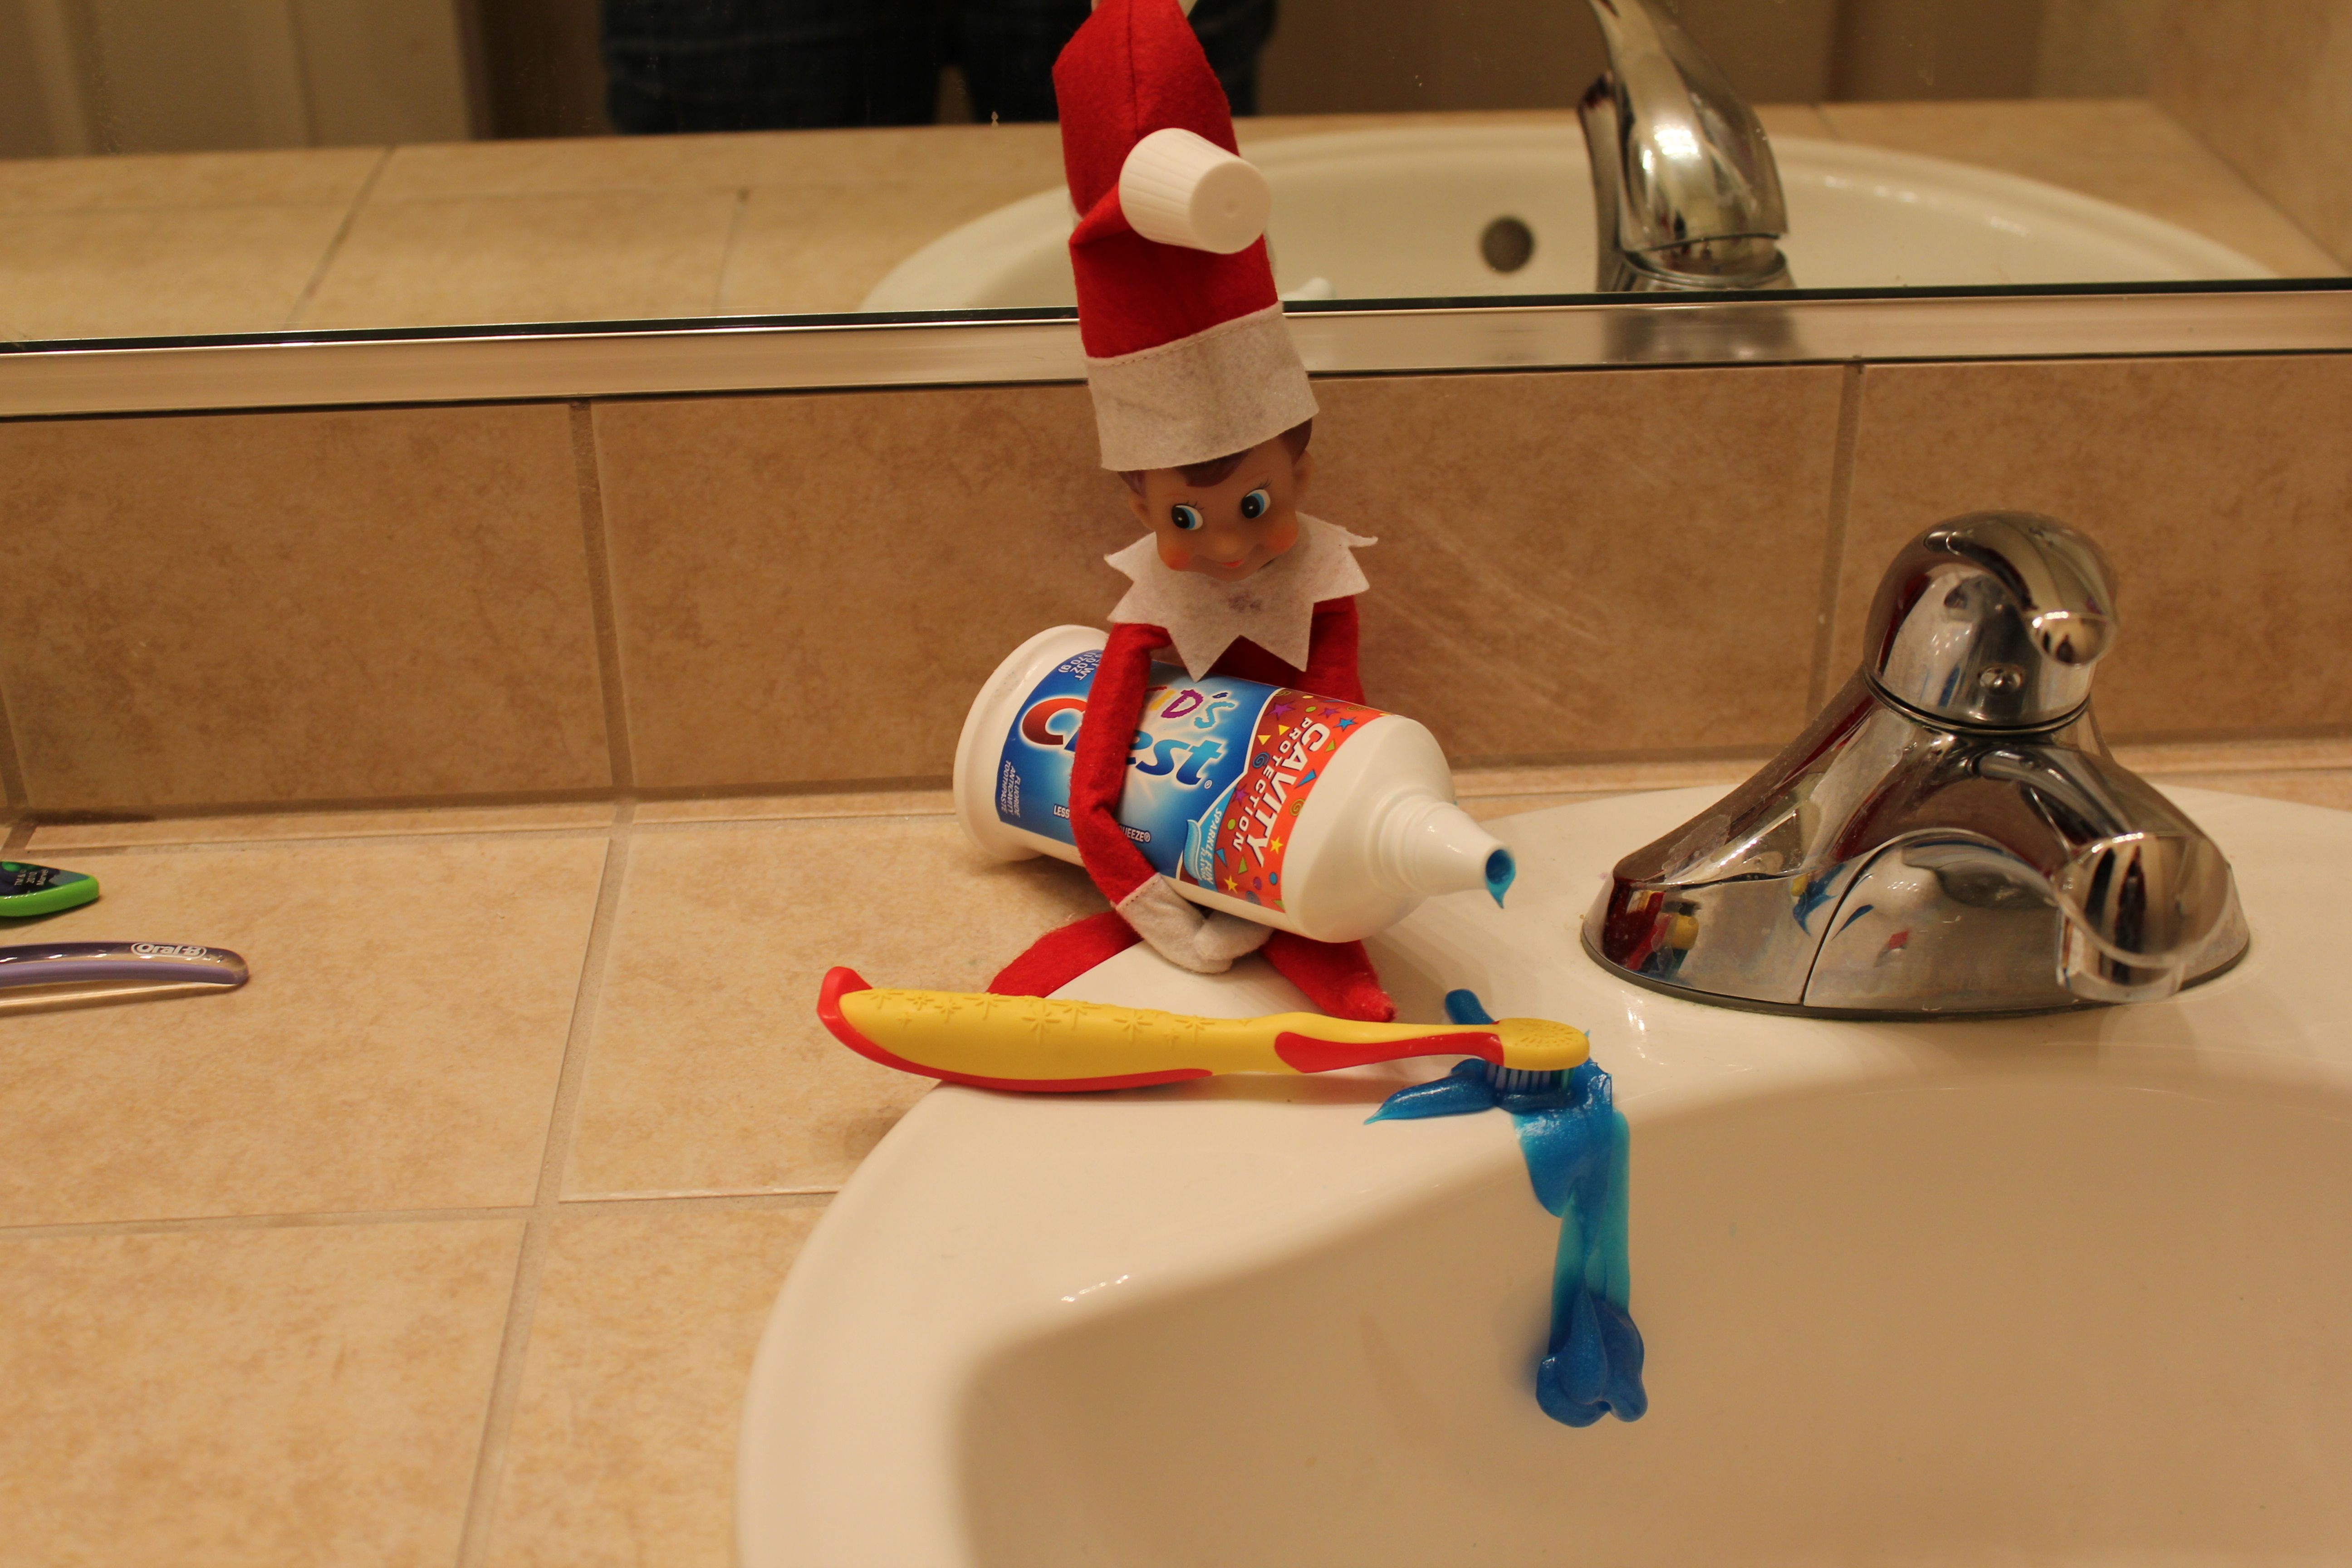 elf trying to put toothpaste on toothbrush